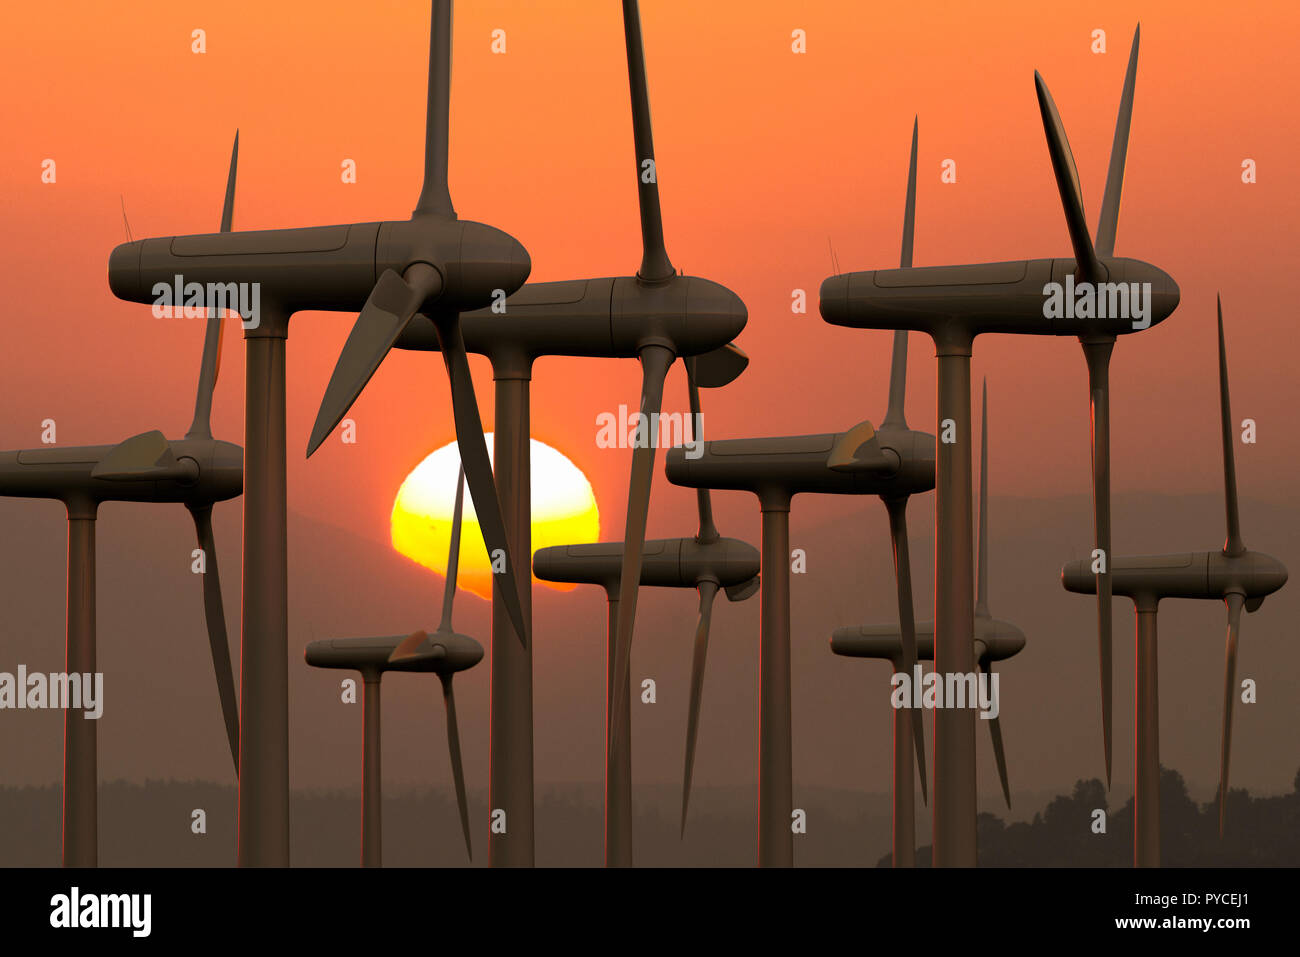 3D rendering of a wind farm at sunset - Stock Image